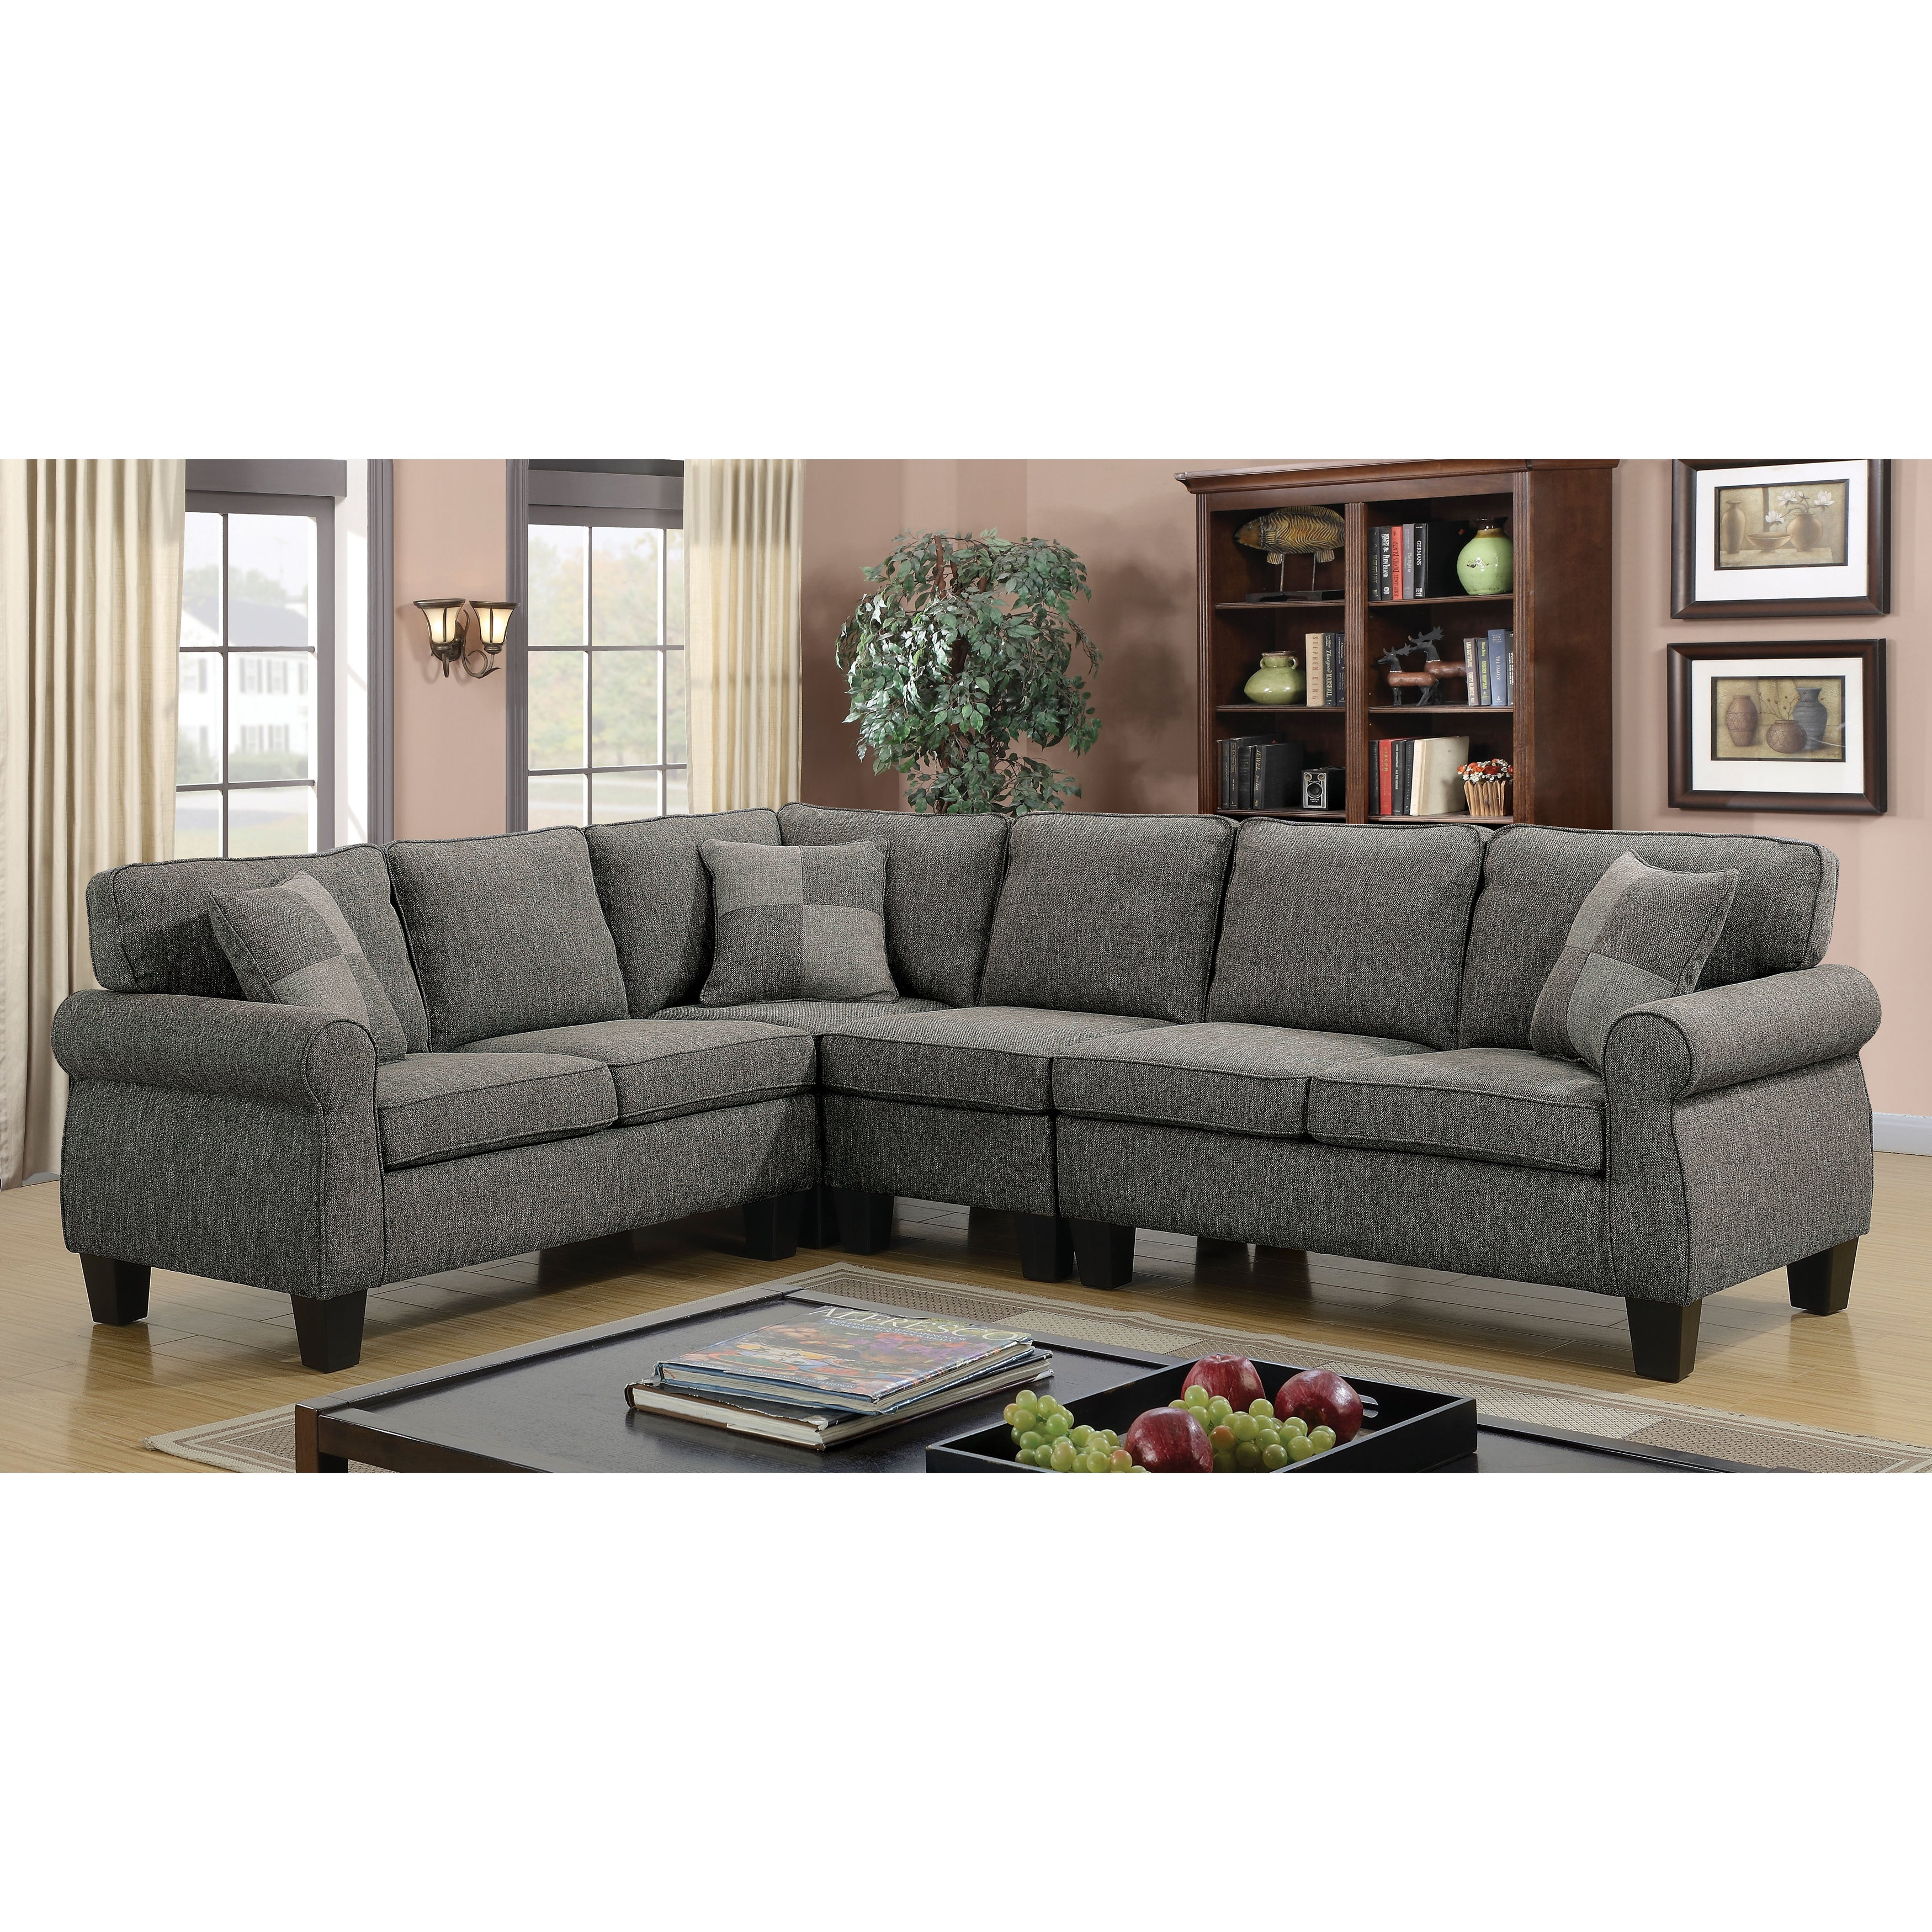 Charmant Buy L Shape Sectional Sofas Online At Overstock.com   Our Best Living Room  Furniture Deals